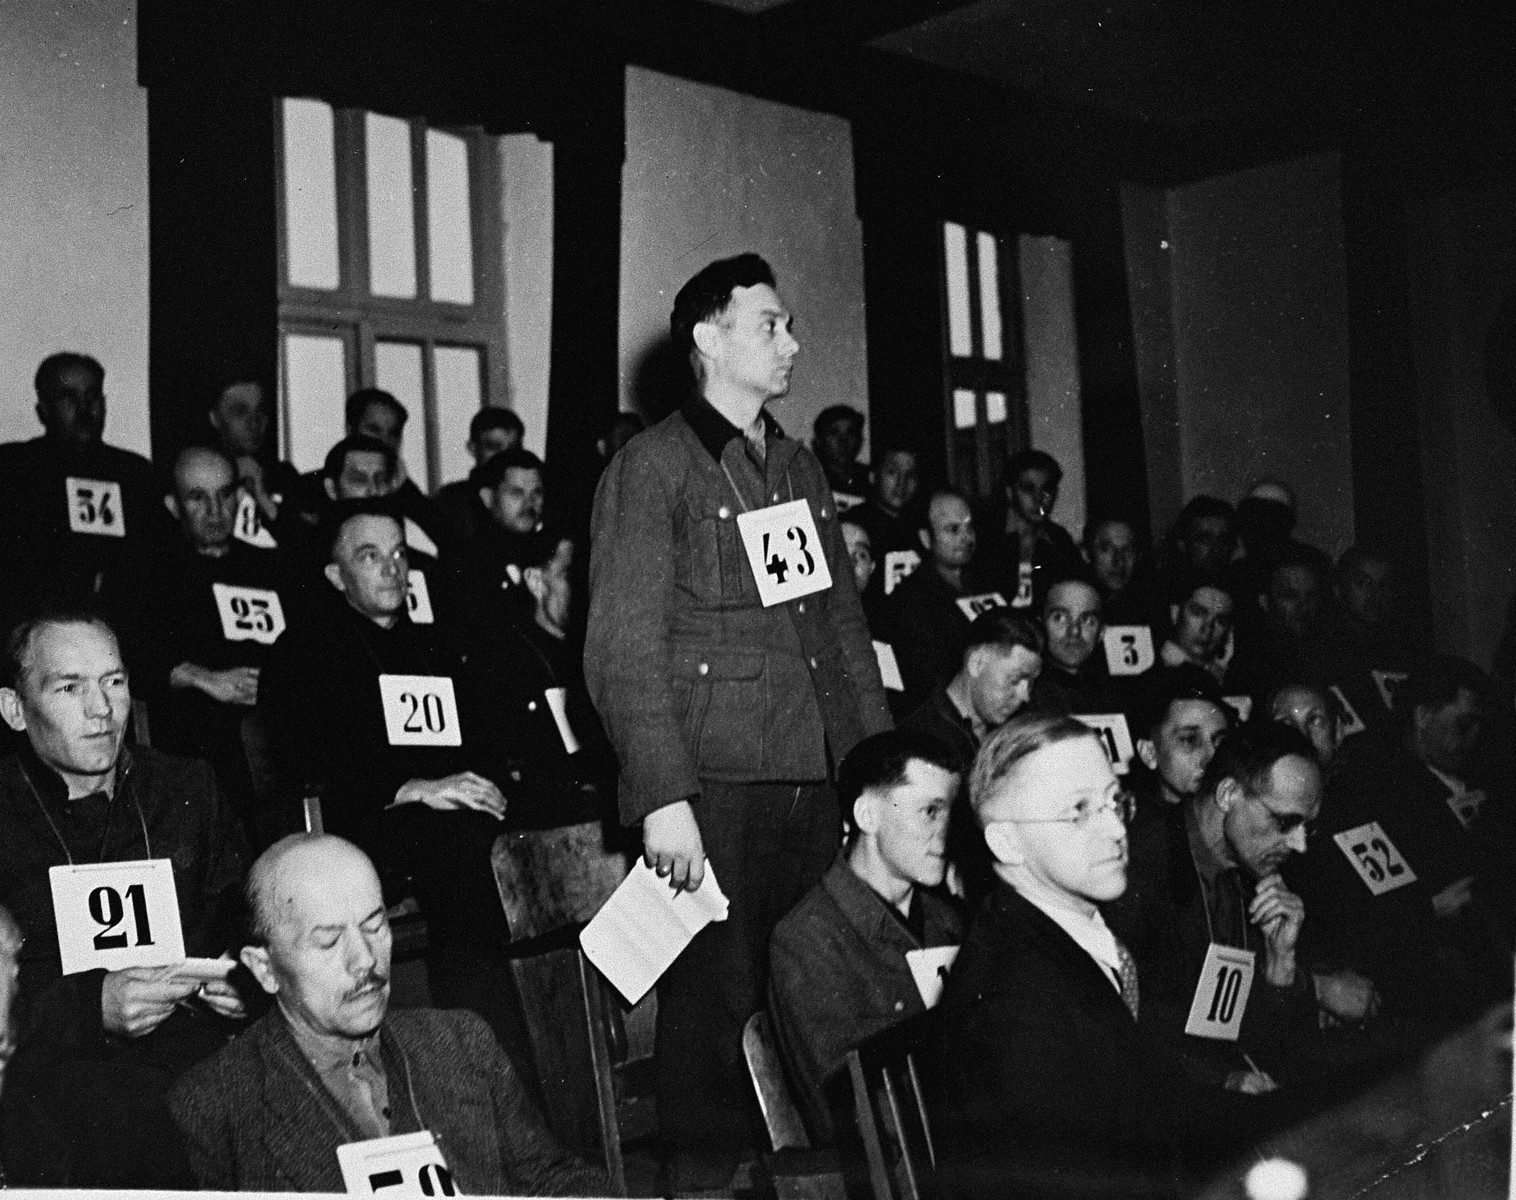 Former SS-Unterscharfuehrer Wilhelm Mueller, a defendant at the trial of 61 former camp personnel and prisoners from Mauthausen, stands in his place in the defendants' dock.    Muellert was convicted and sentenced to death on May 13, 1946.